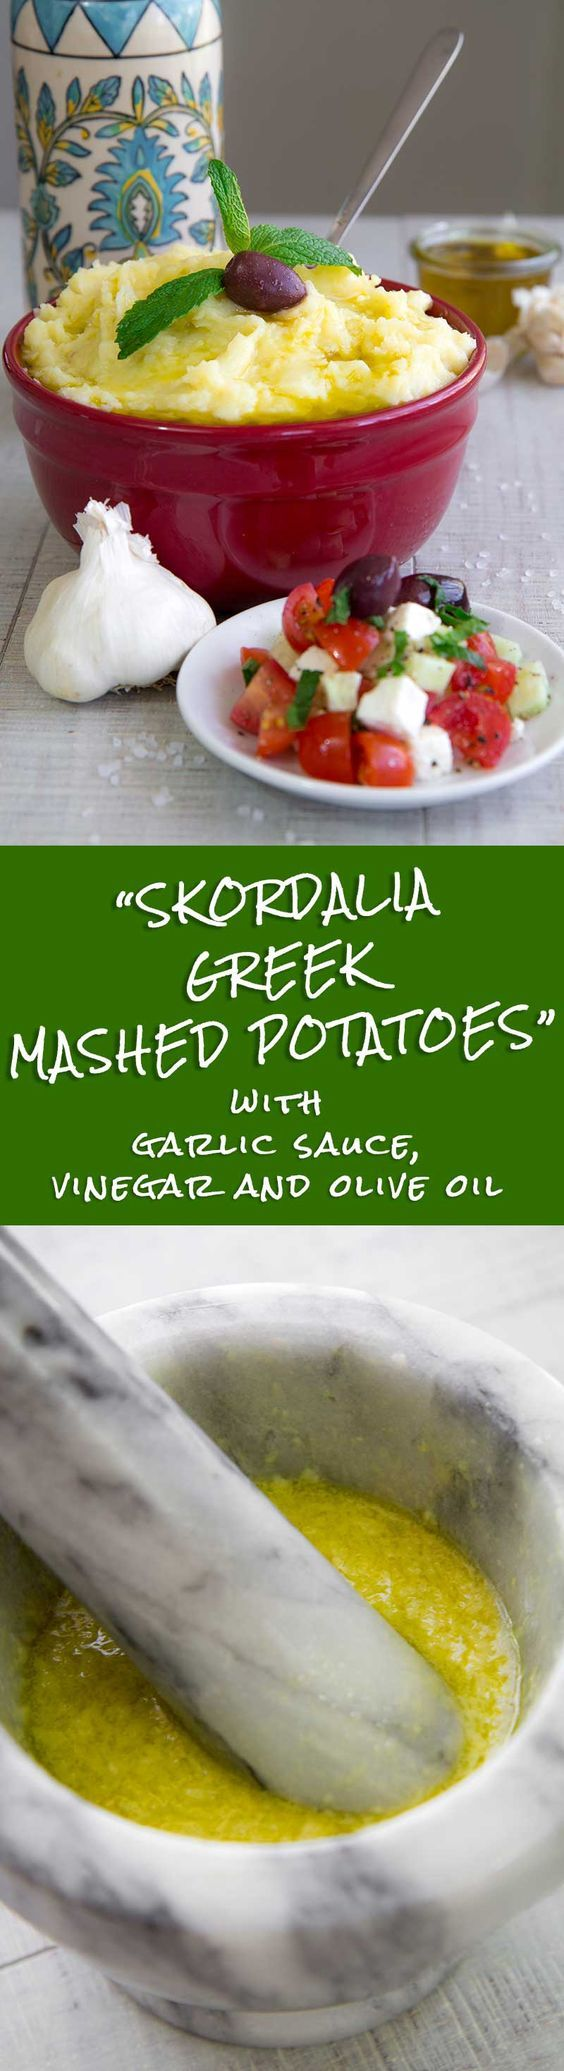 SKORDALIA RECIPE - Greek garlic mashed potatoes -  The Skordalia recipe made with mashed potatoes is one of my preferred Greek side dishes; it's so simple to make and flavorful! Traditionally, Skordalia is served along with fried salt cod, but it is delicious also with grilled lamb, fried zucchini and eggplants, or beet salad!  - tags: vegan vegetarian family dinner Mediterranean dip healthy sauce bread pita appetizer garlic mashed potatoes salad